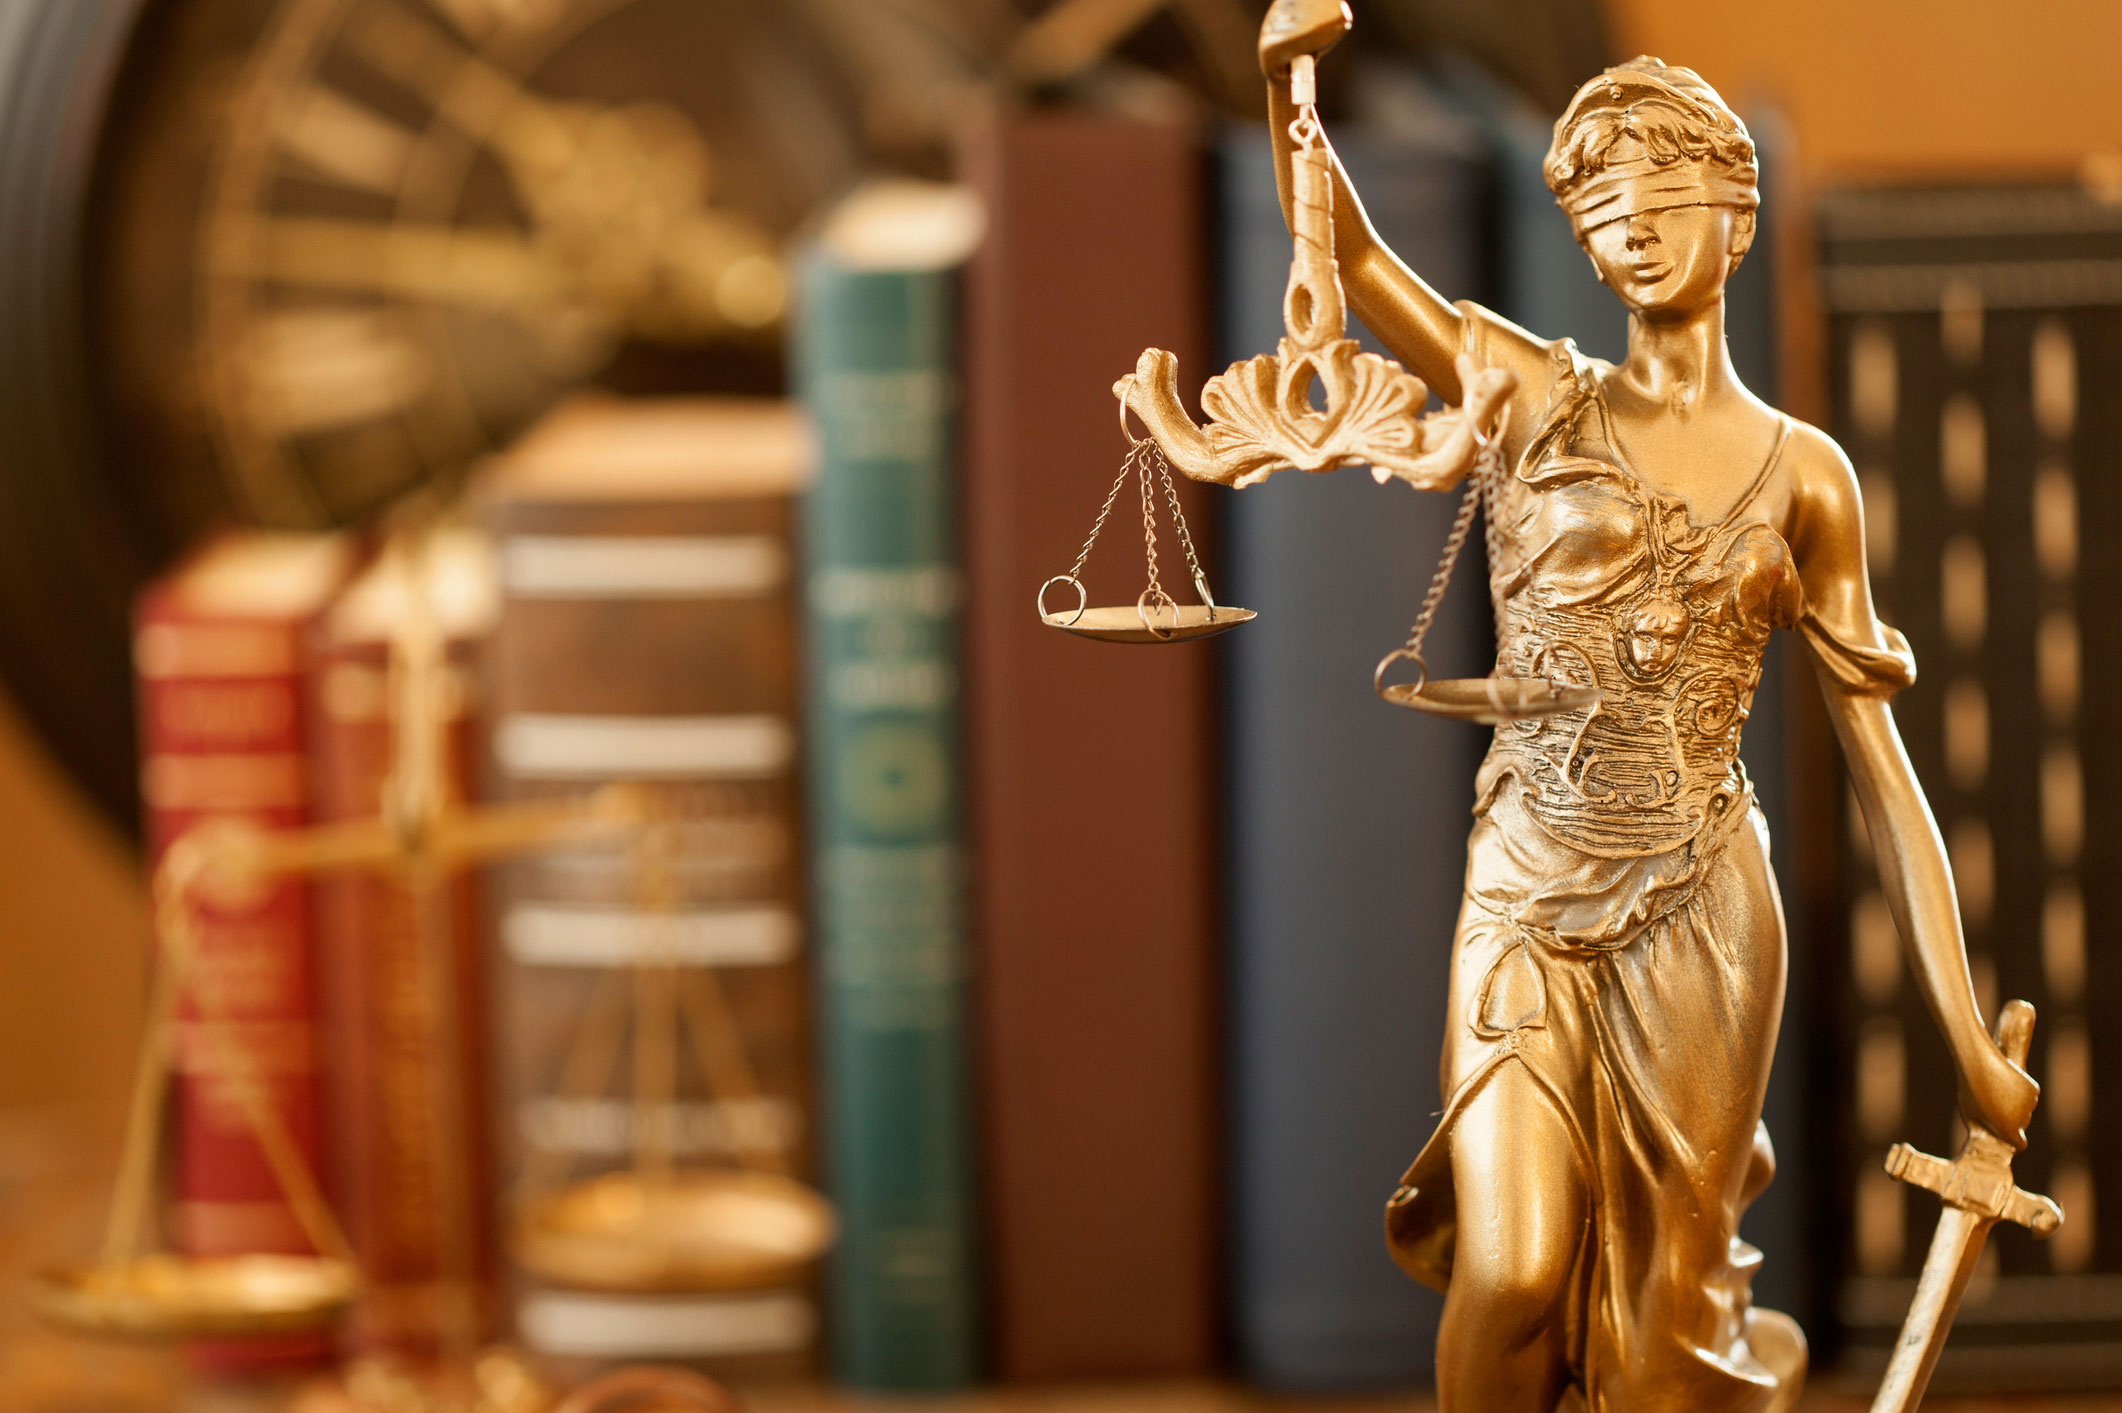 Law-justice-statue-in-front-of-books